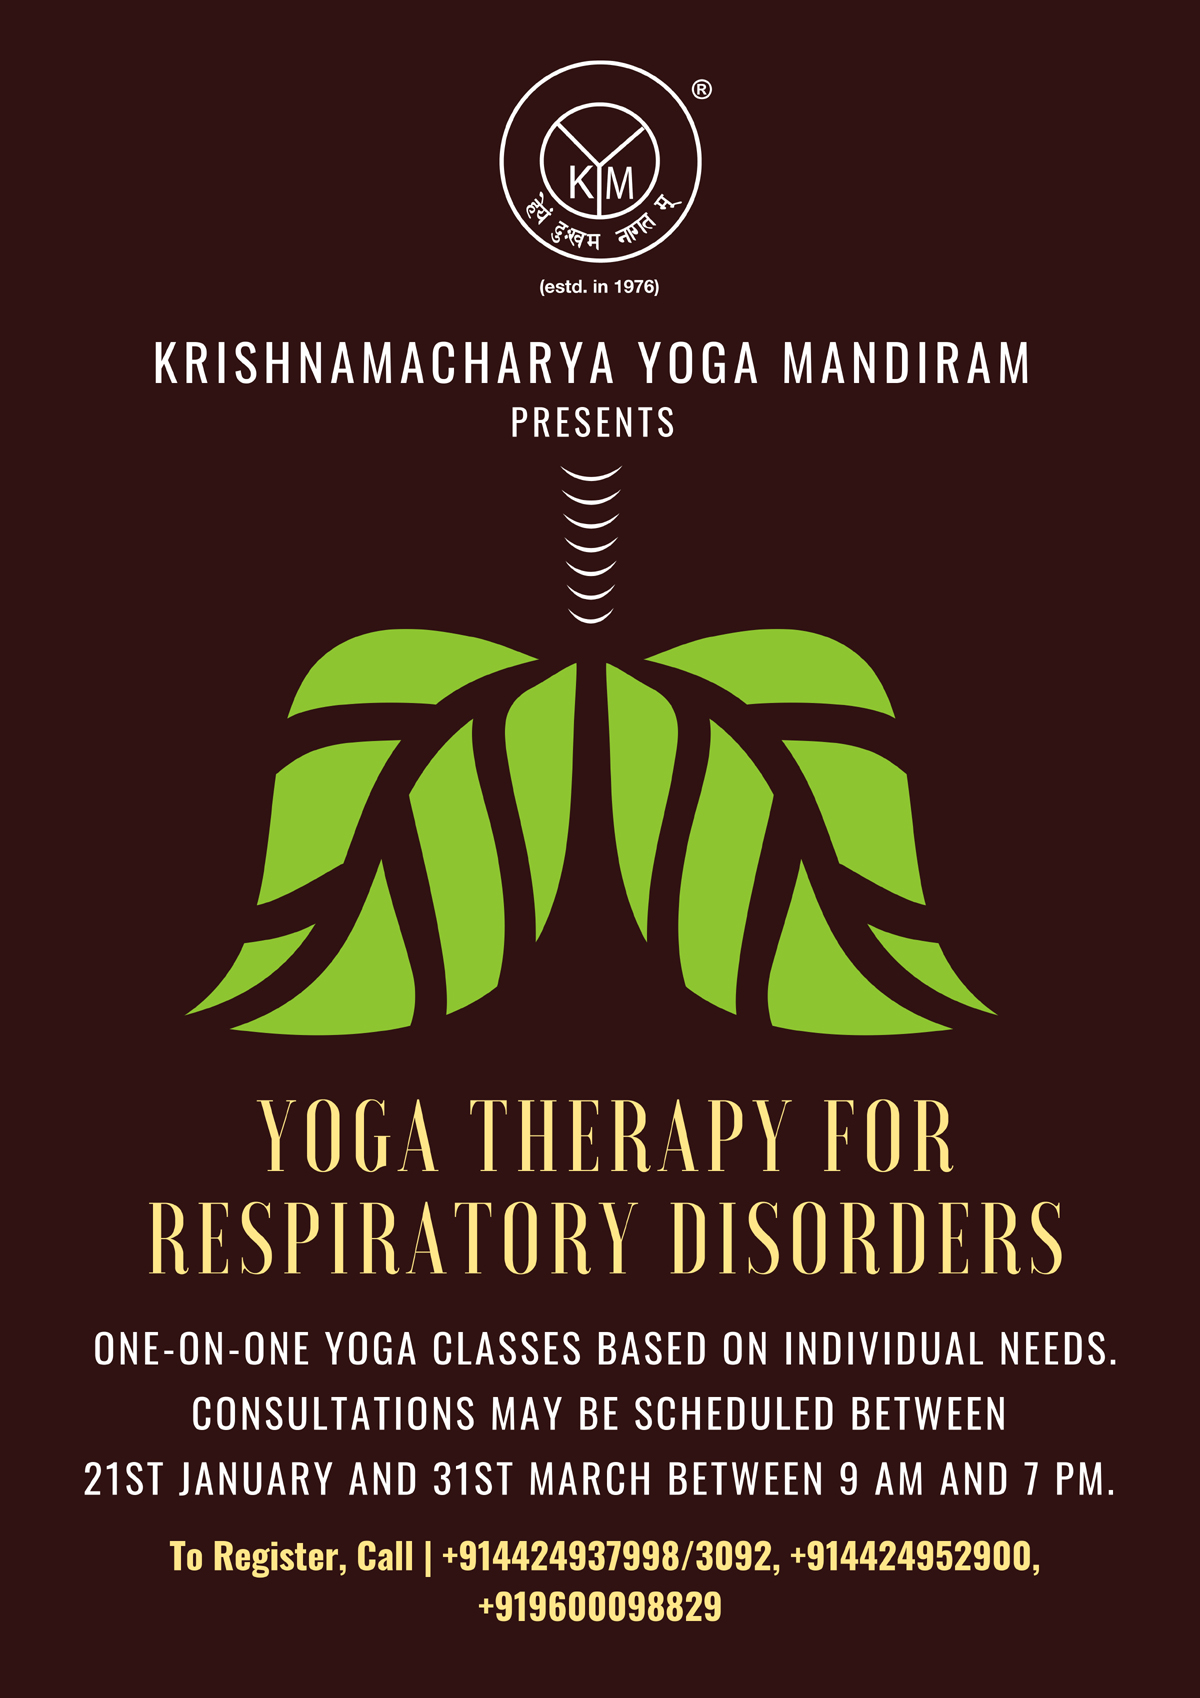 Yoga therapy Programme Focusing on Management of Asthma and other Respiratory Conditions